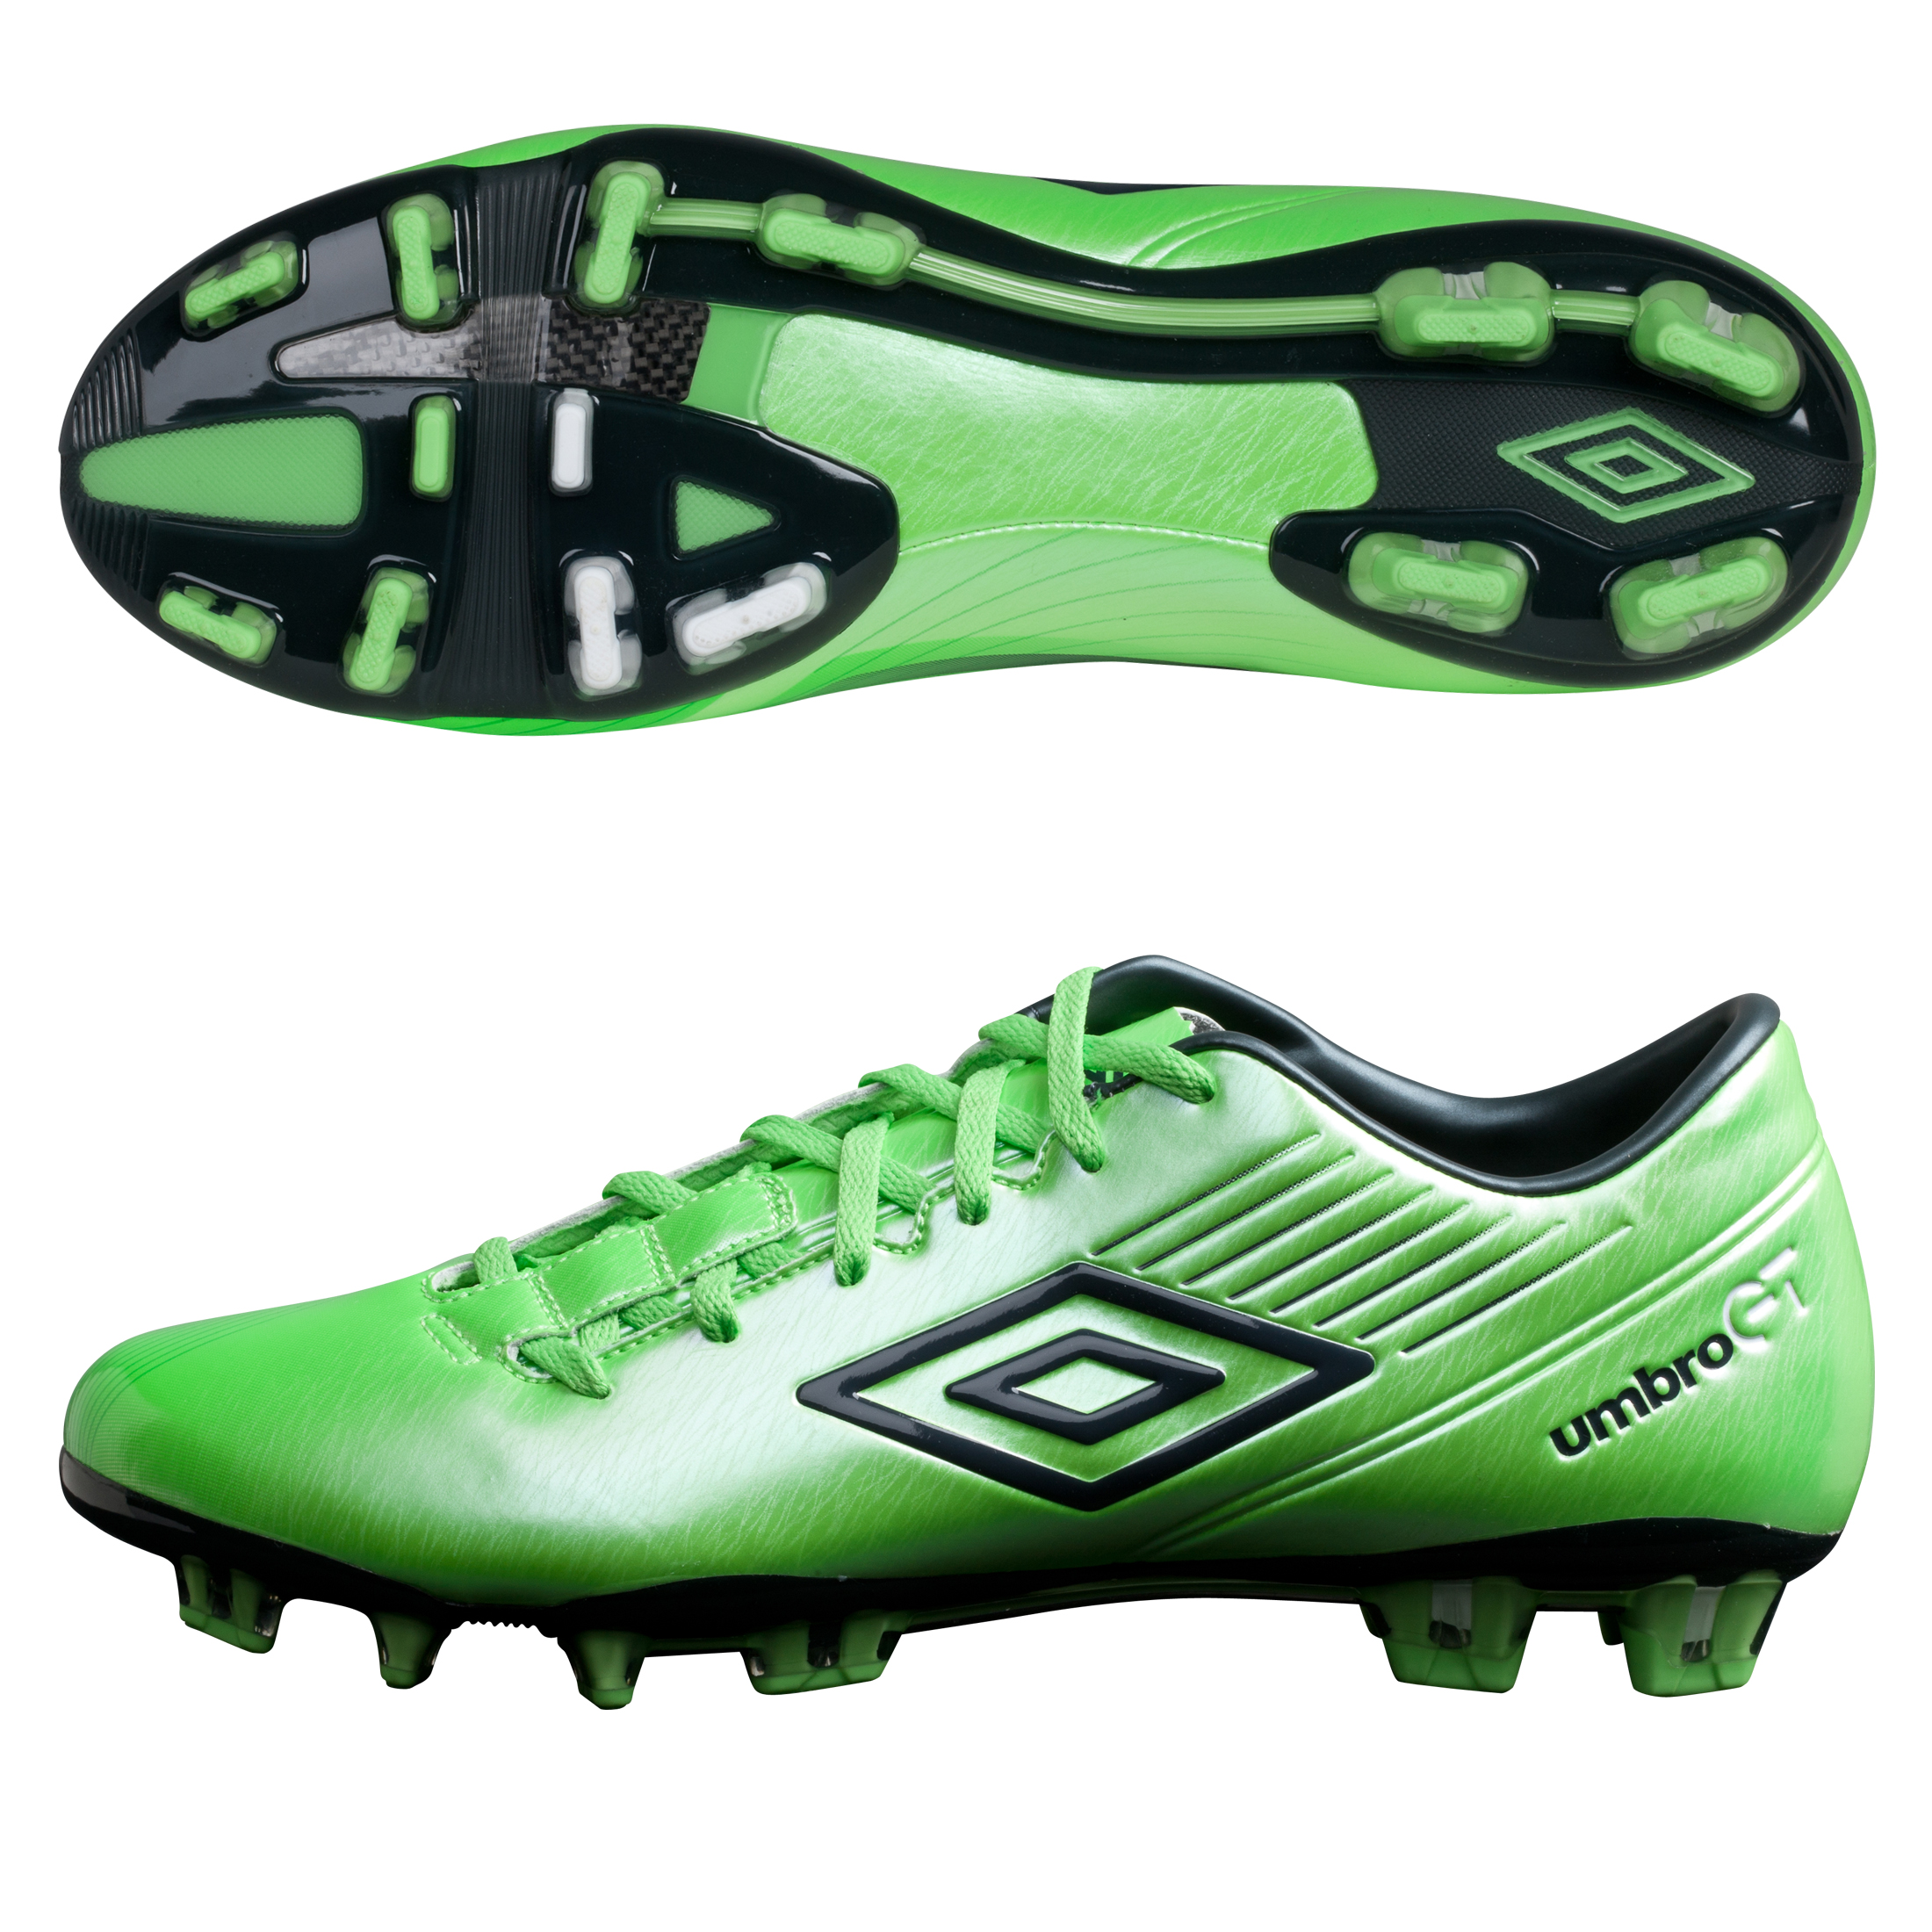 Umbro GT ll Pro Firm Ground Football Boots - Summer Green/Carbon/White